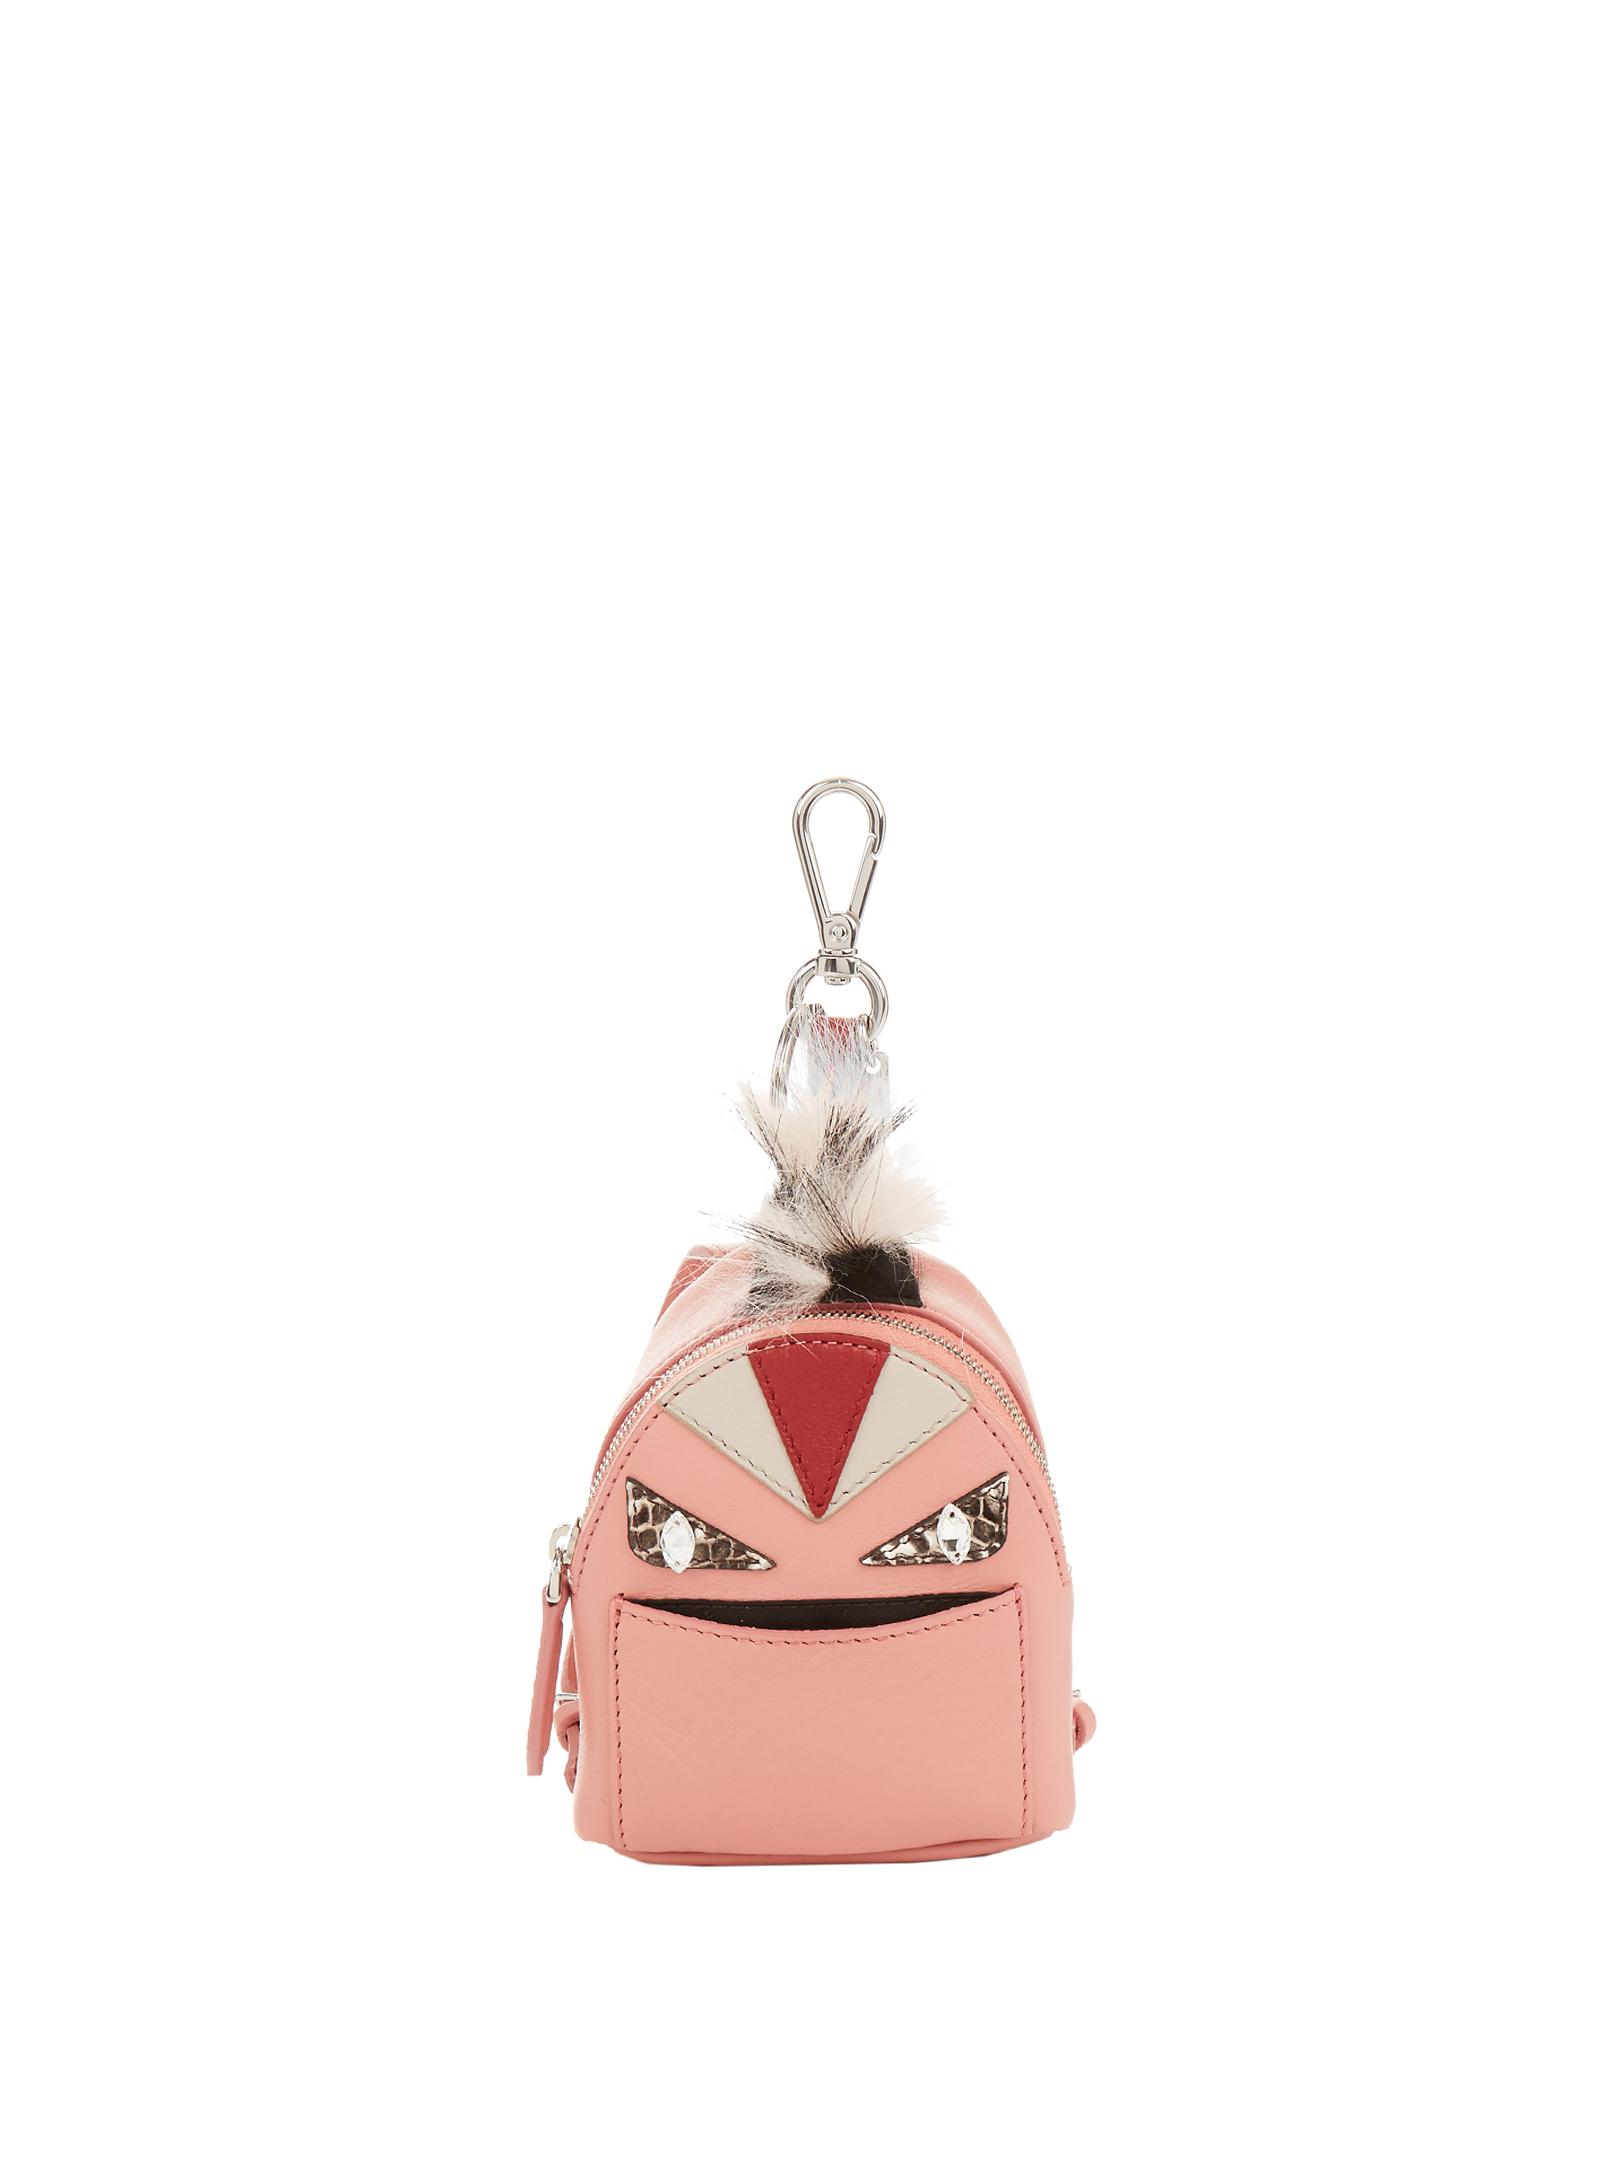 90373f6b4f Gallery. Previously sold at  MATCHESFASHION.COM · Women s Fendi Bag Bugs